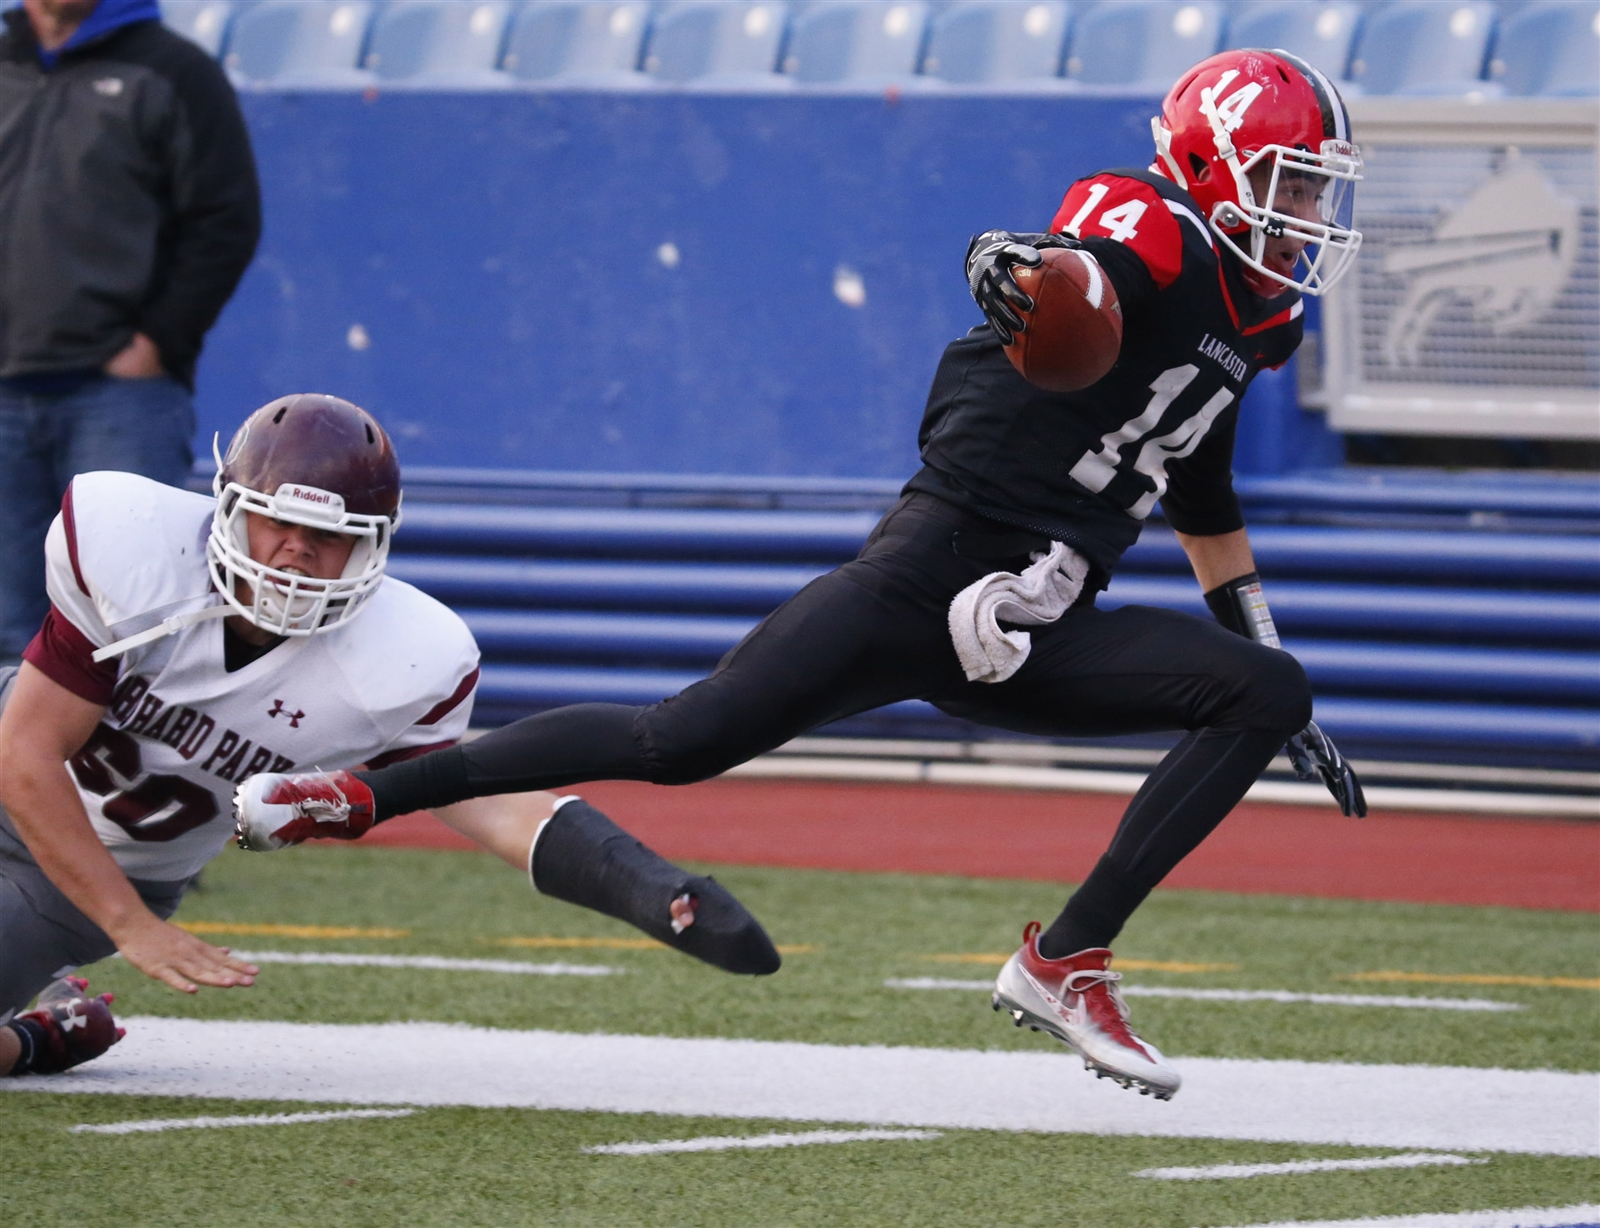 Max Giordano and the Lancaster Legends begin defense of their Section VI Class AA title against last year's Class A champion Bennett, which moves up a classification into the newly formed 11-team AA Division. (Harry Scull Jr./Buffalo News file photo)